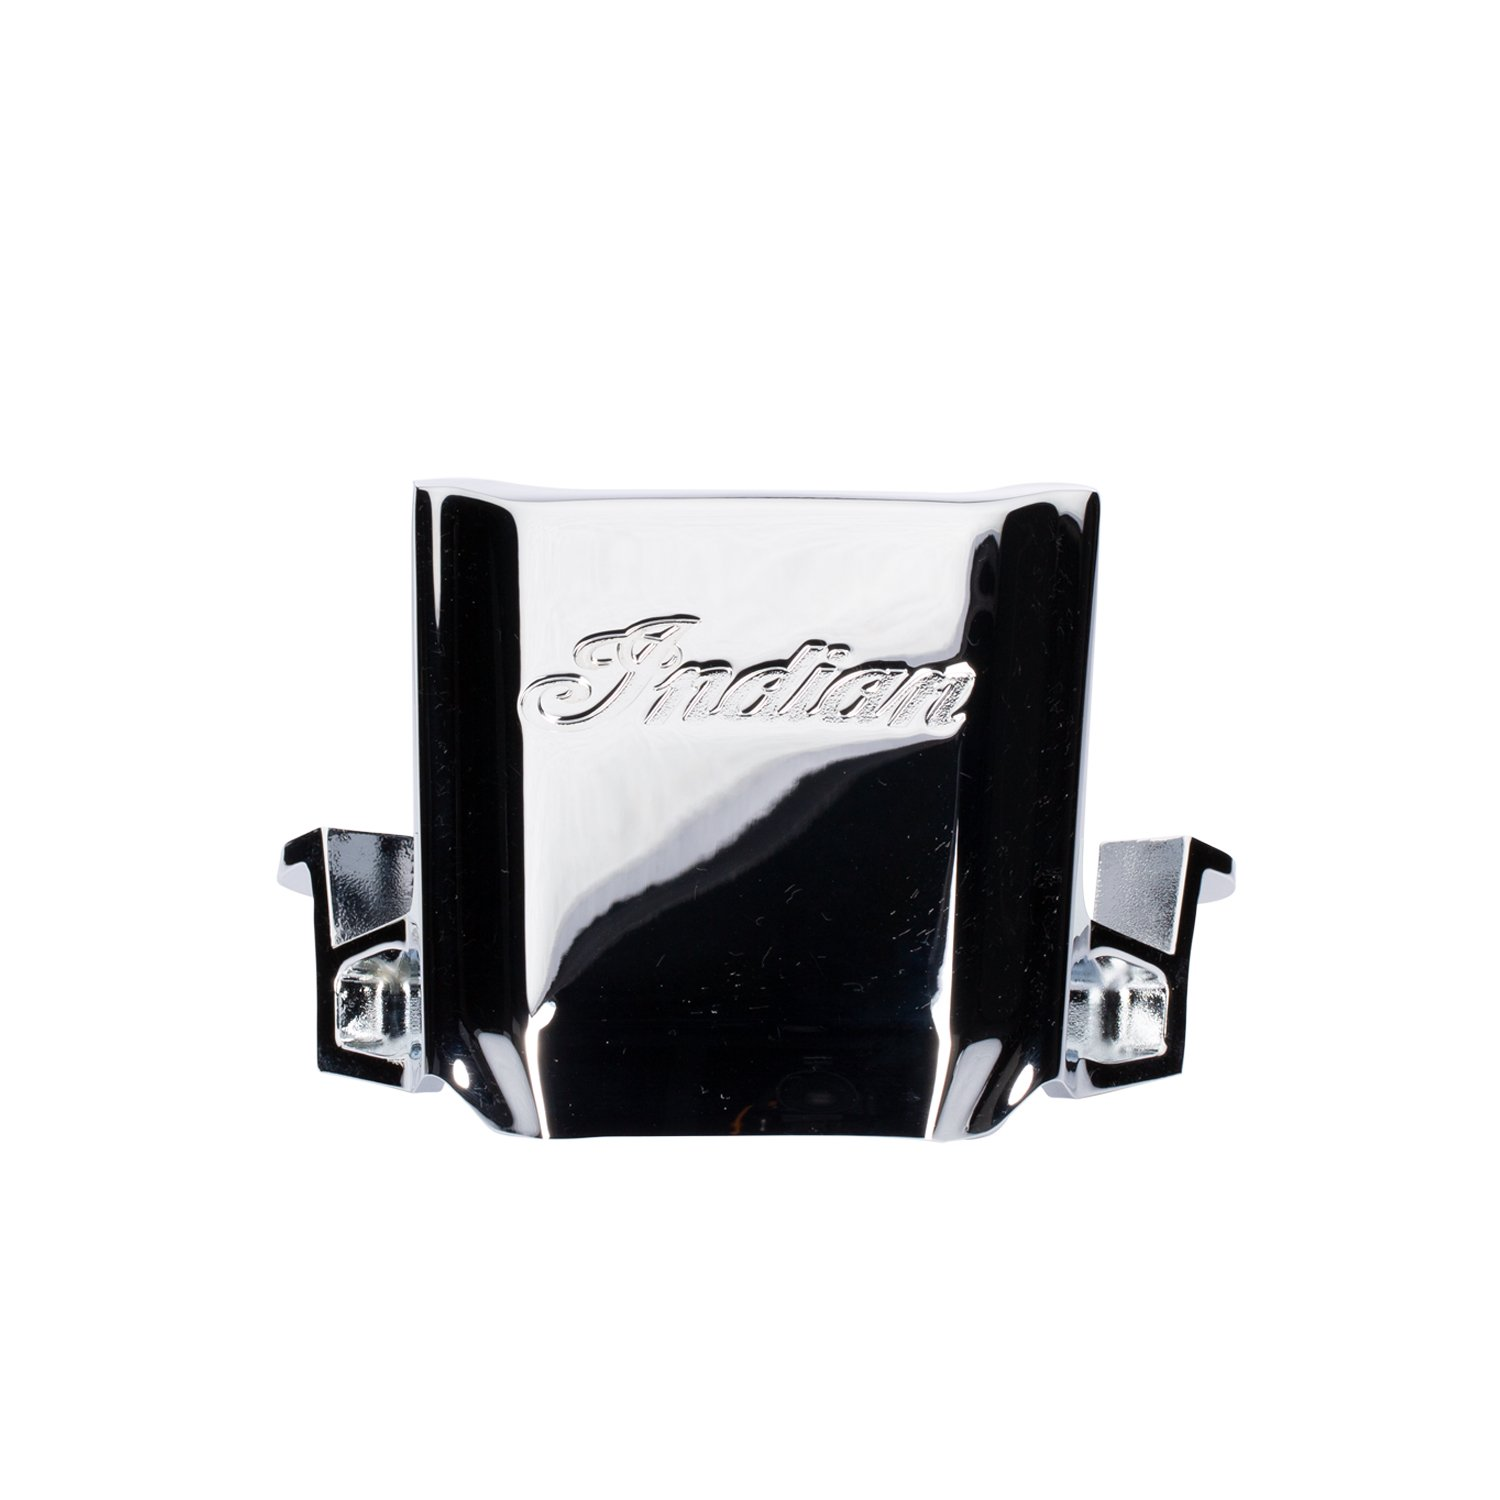 Wire Harness Cover – Chrome